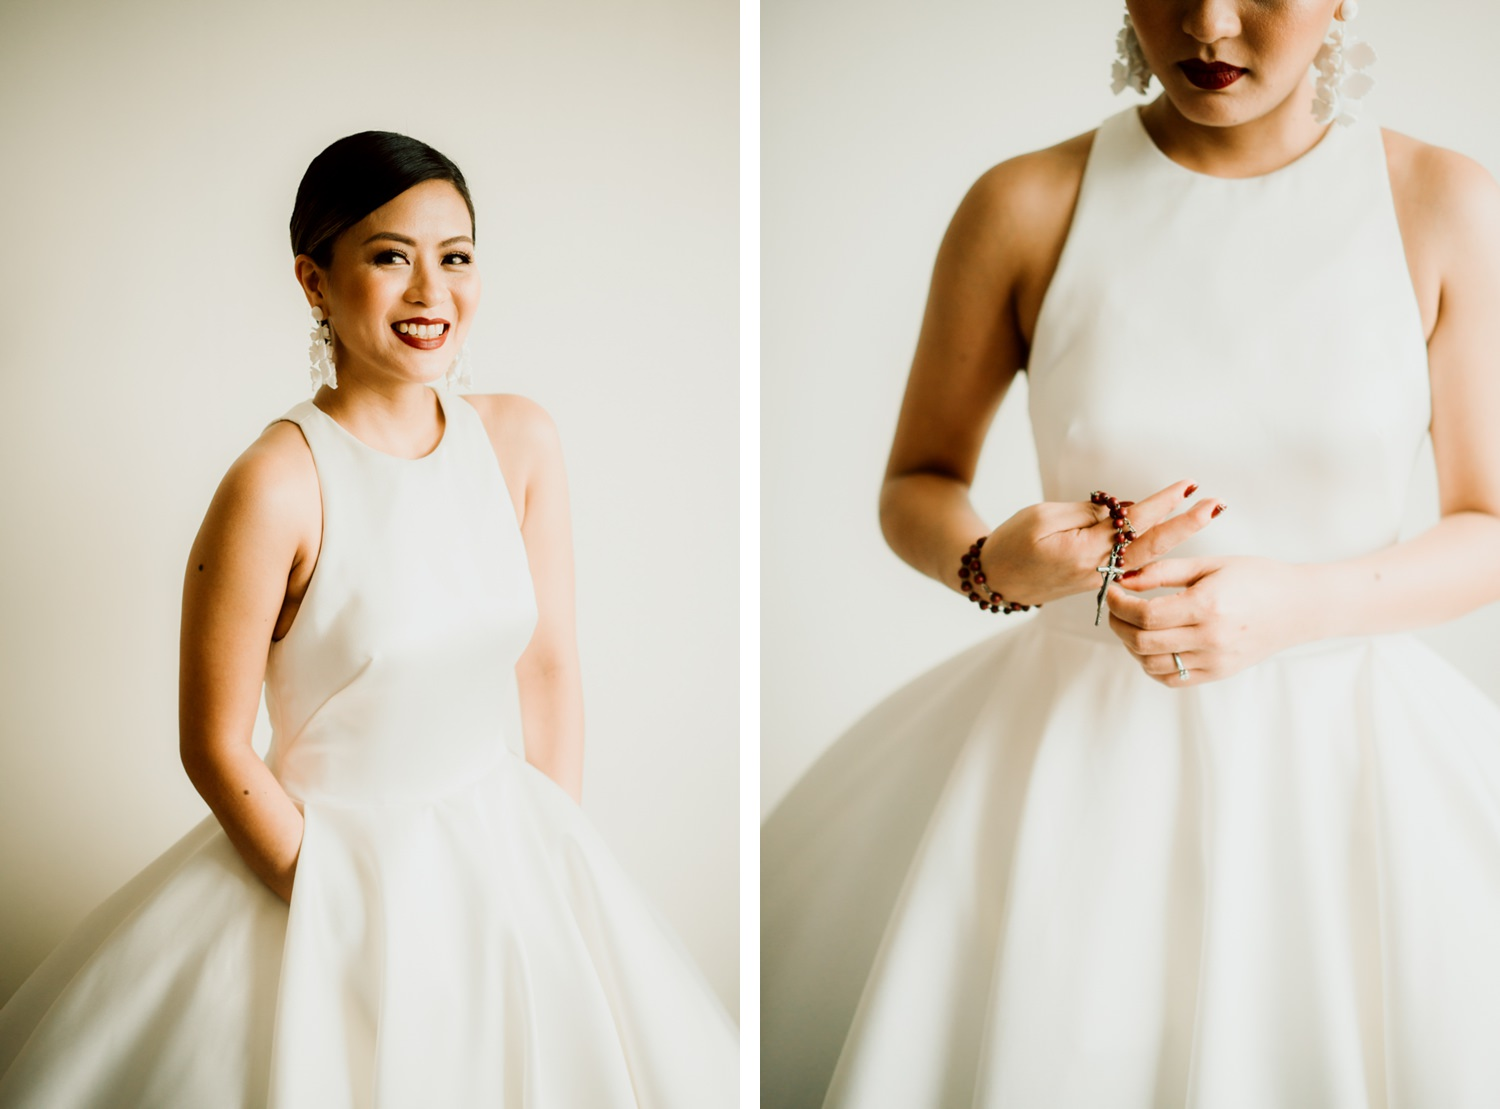 Oak St Studios - Elaine and Calde - Manila Philippines Wedding Photographer